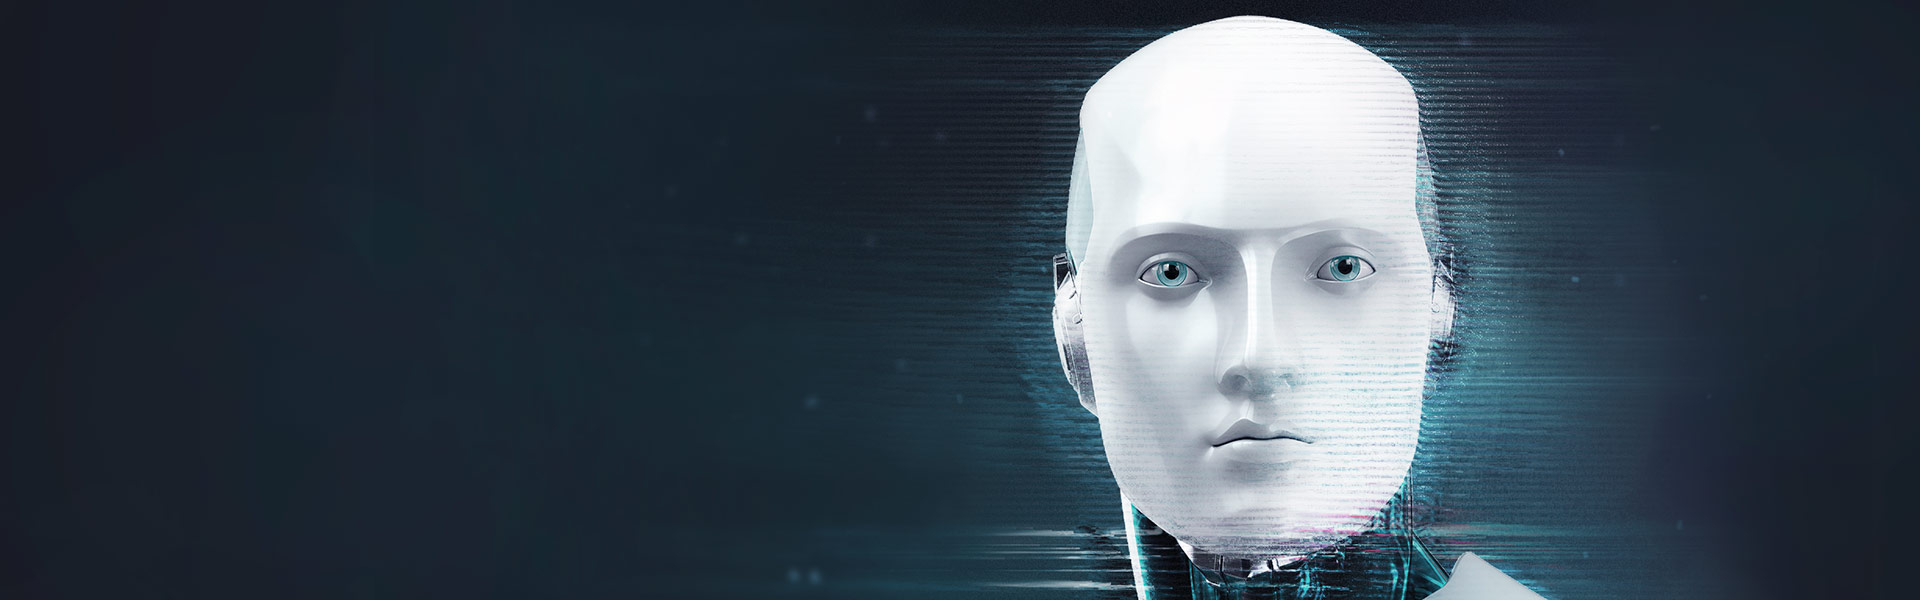 ESET Android banner